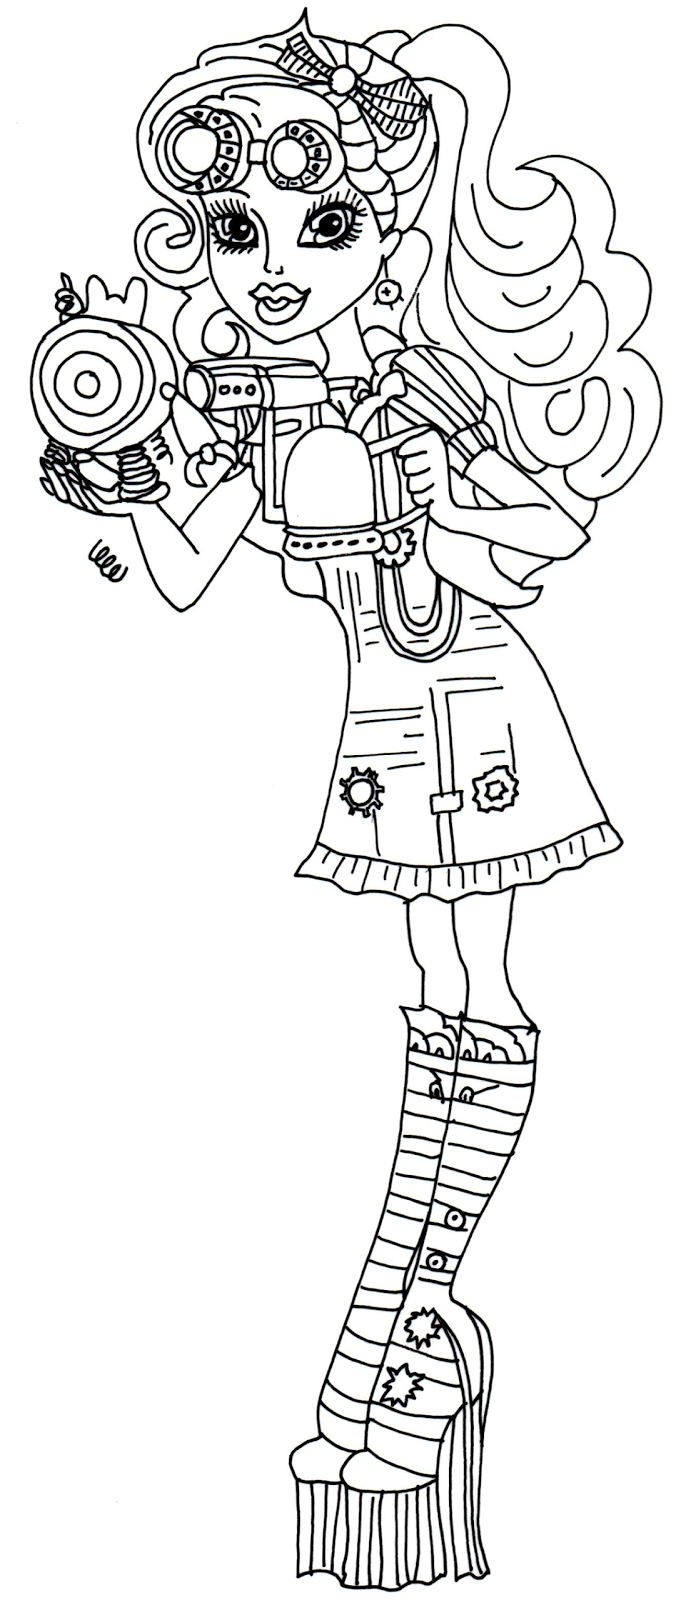 Free Printable Monster High Coloring Pages: Robecca Steam